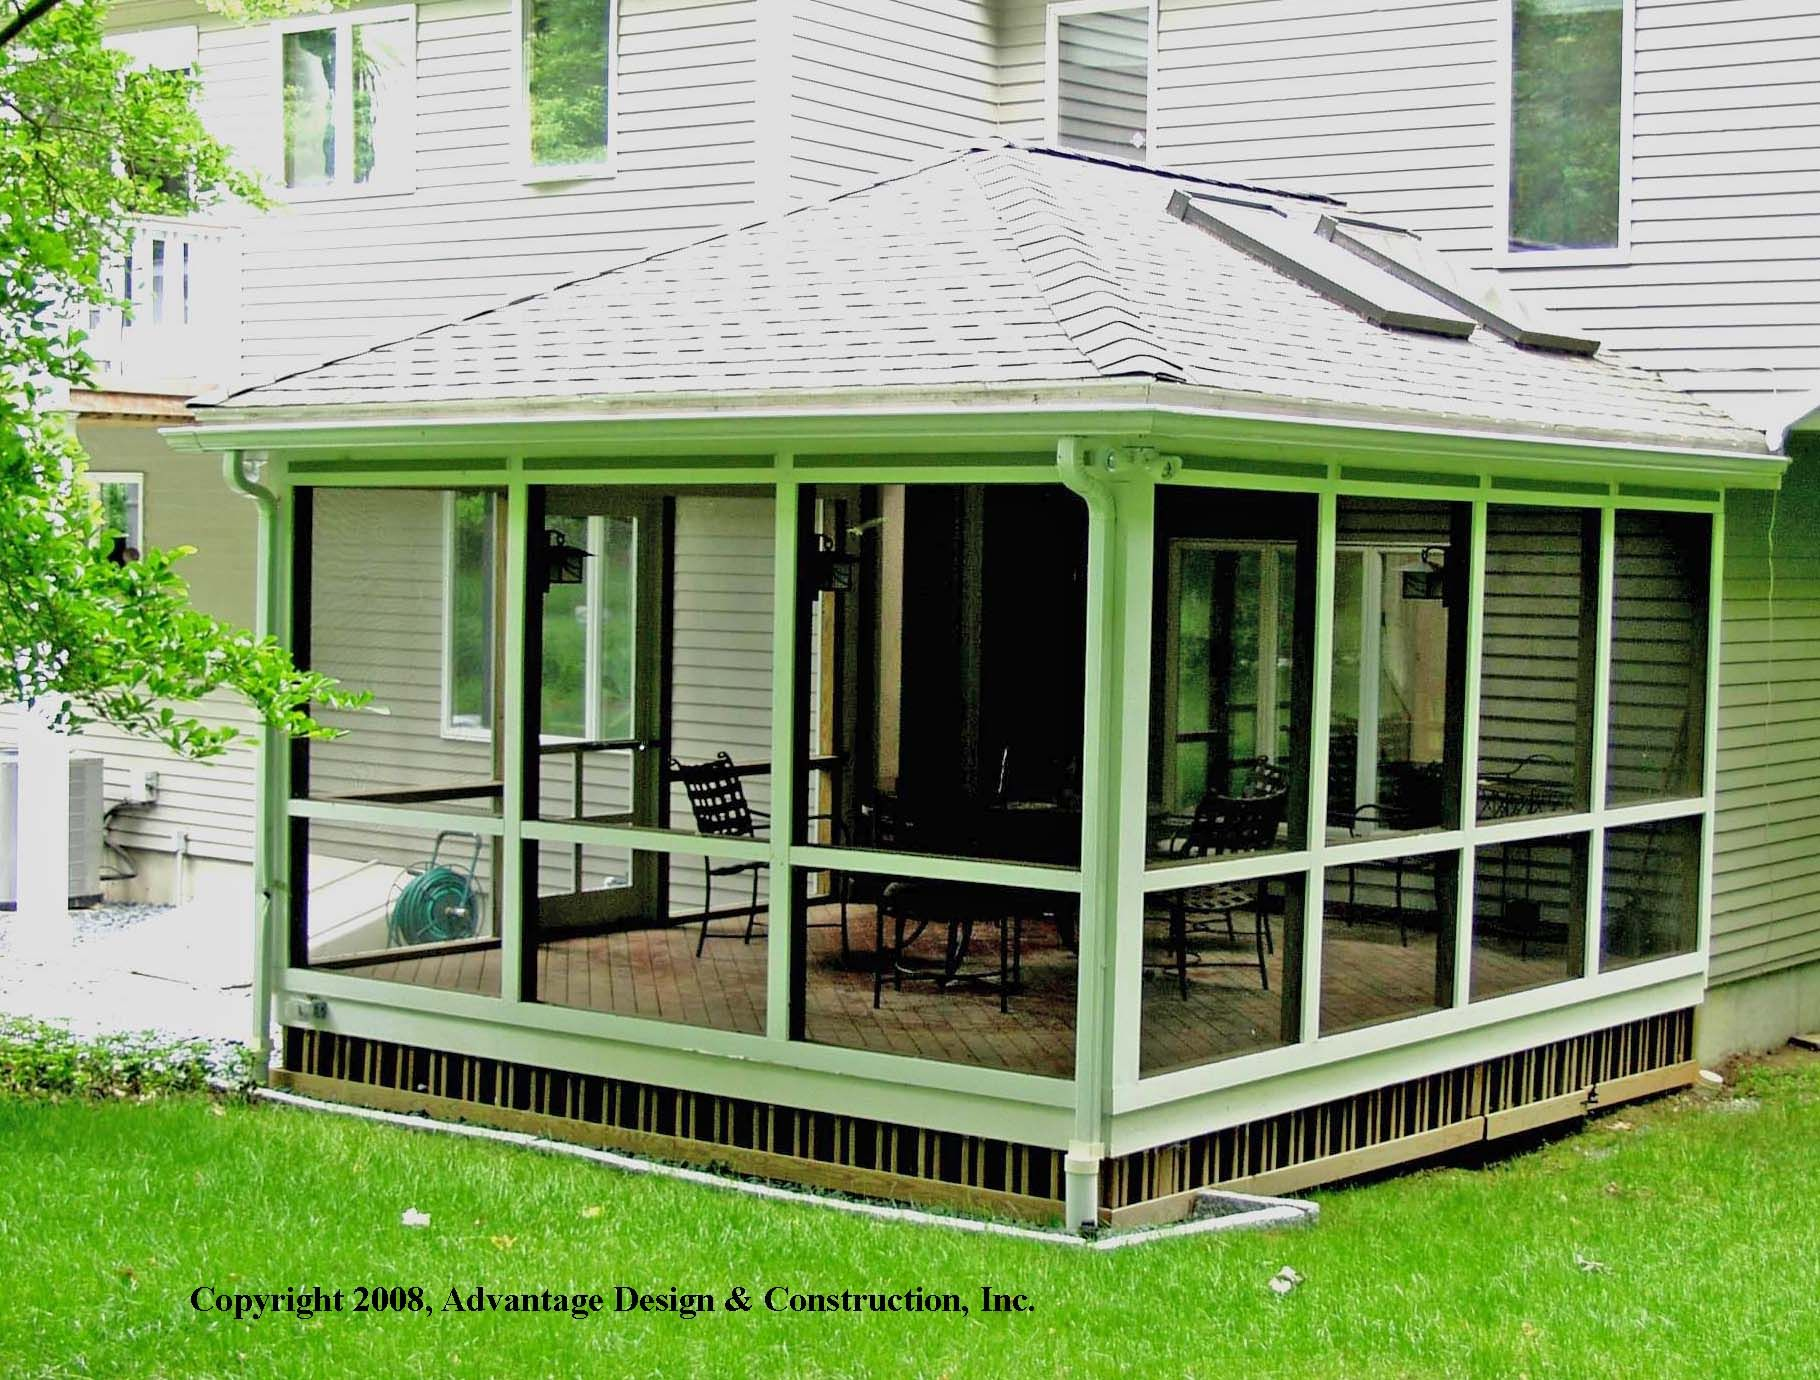 Small decks boston decks porches and sunrooms blog over 20 years of designing decked - Screen porch roof set ...